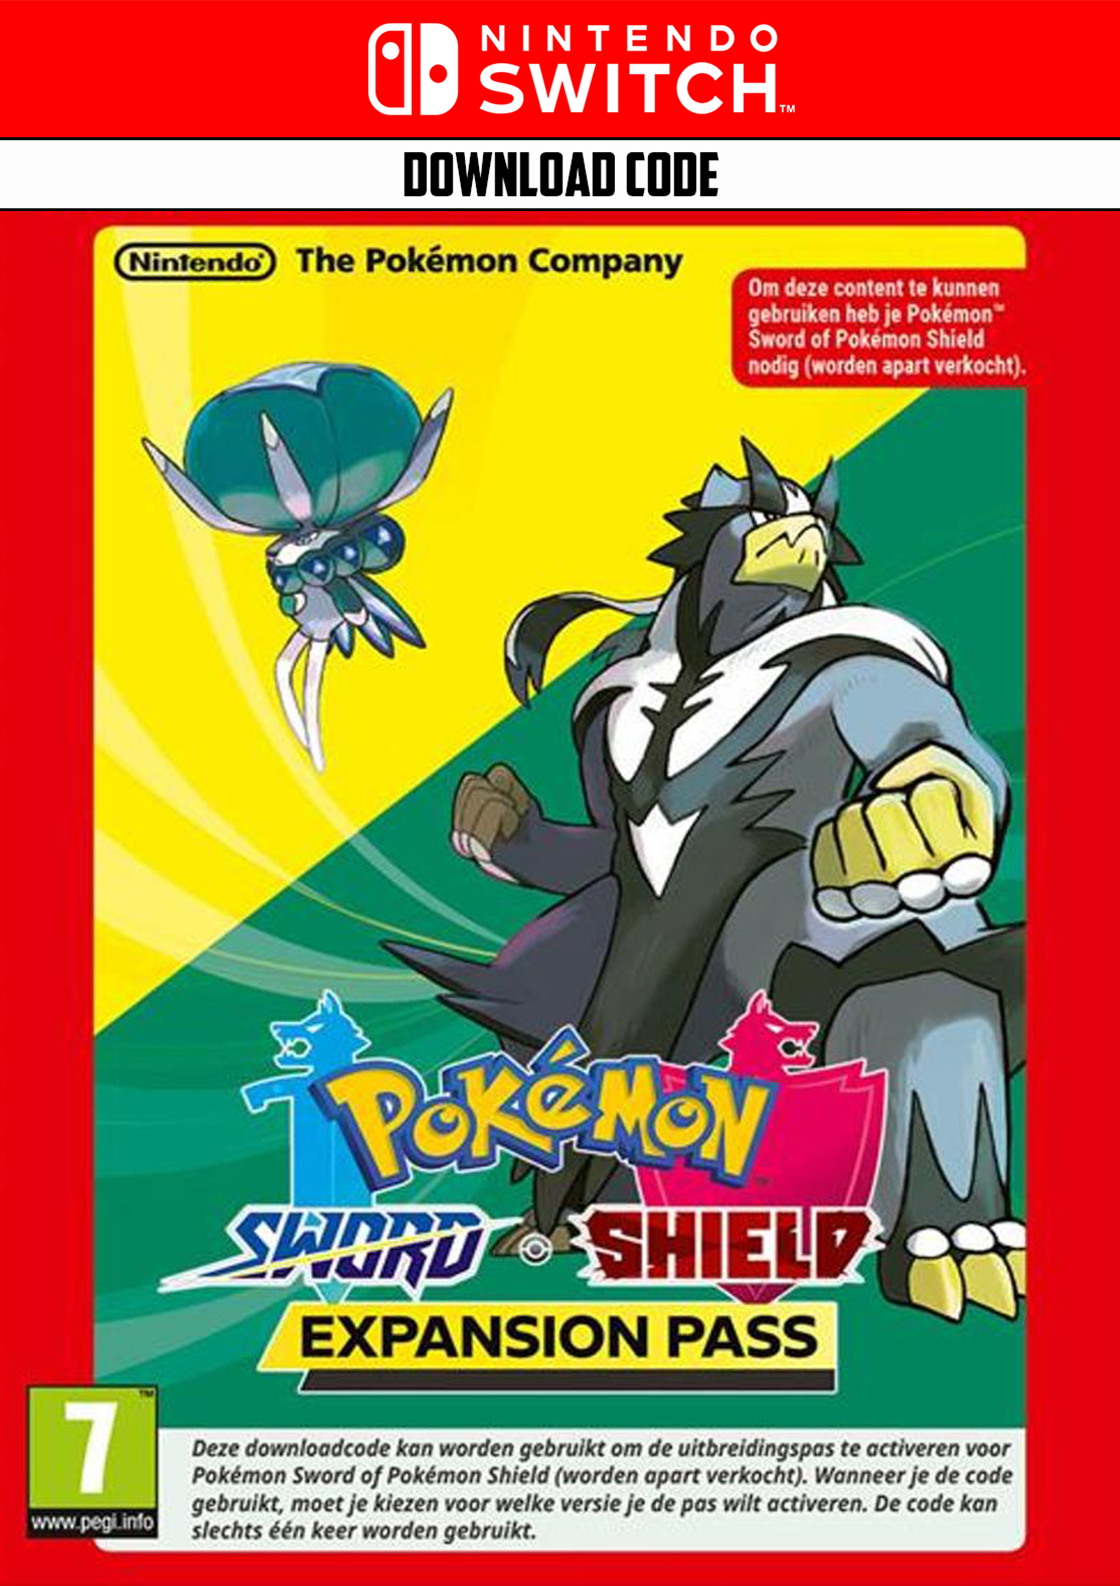 Pokemon Sword/Shield Expension Pass - Nintendo Switch Download